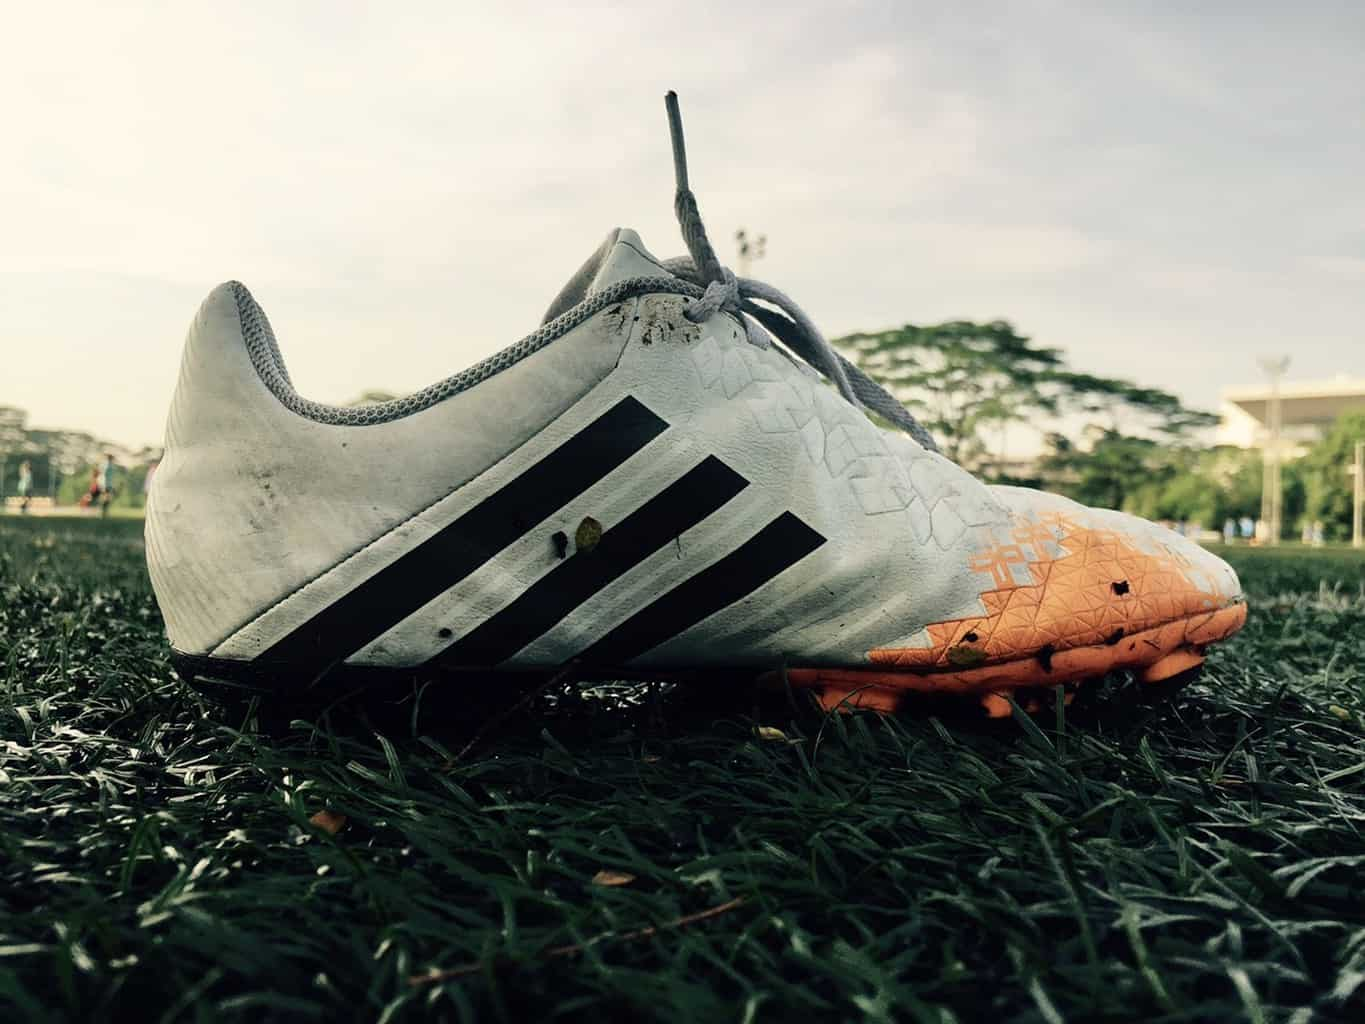 A close up of a rough looking white soccer shoe in a grass field